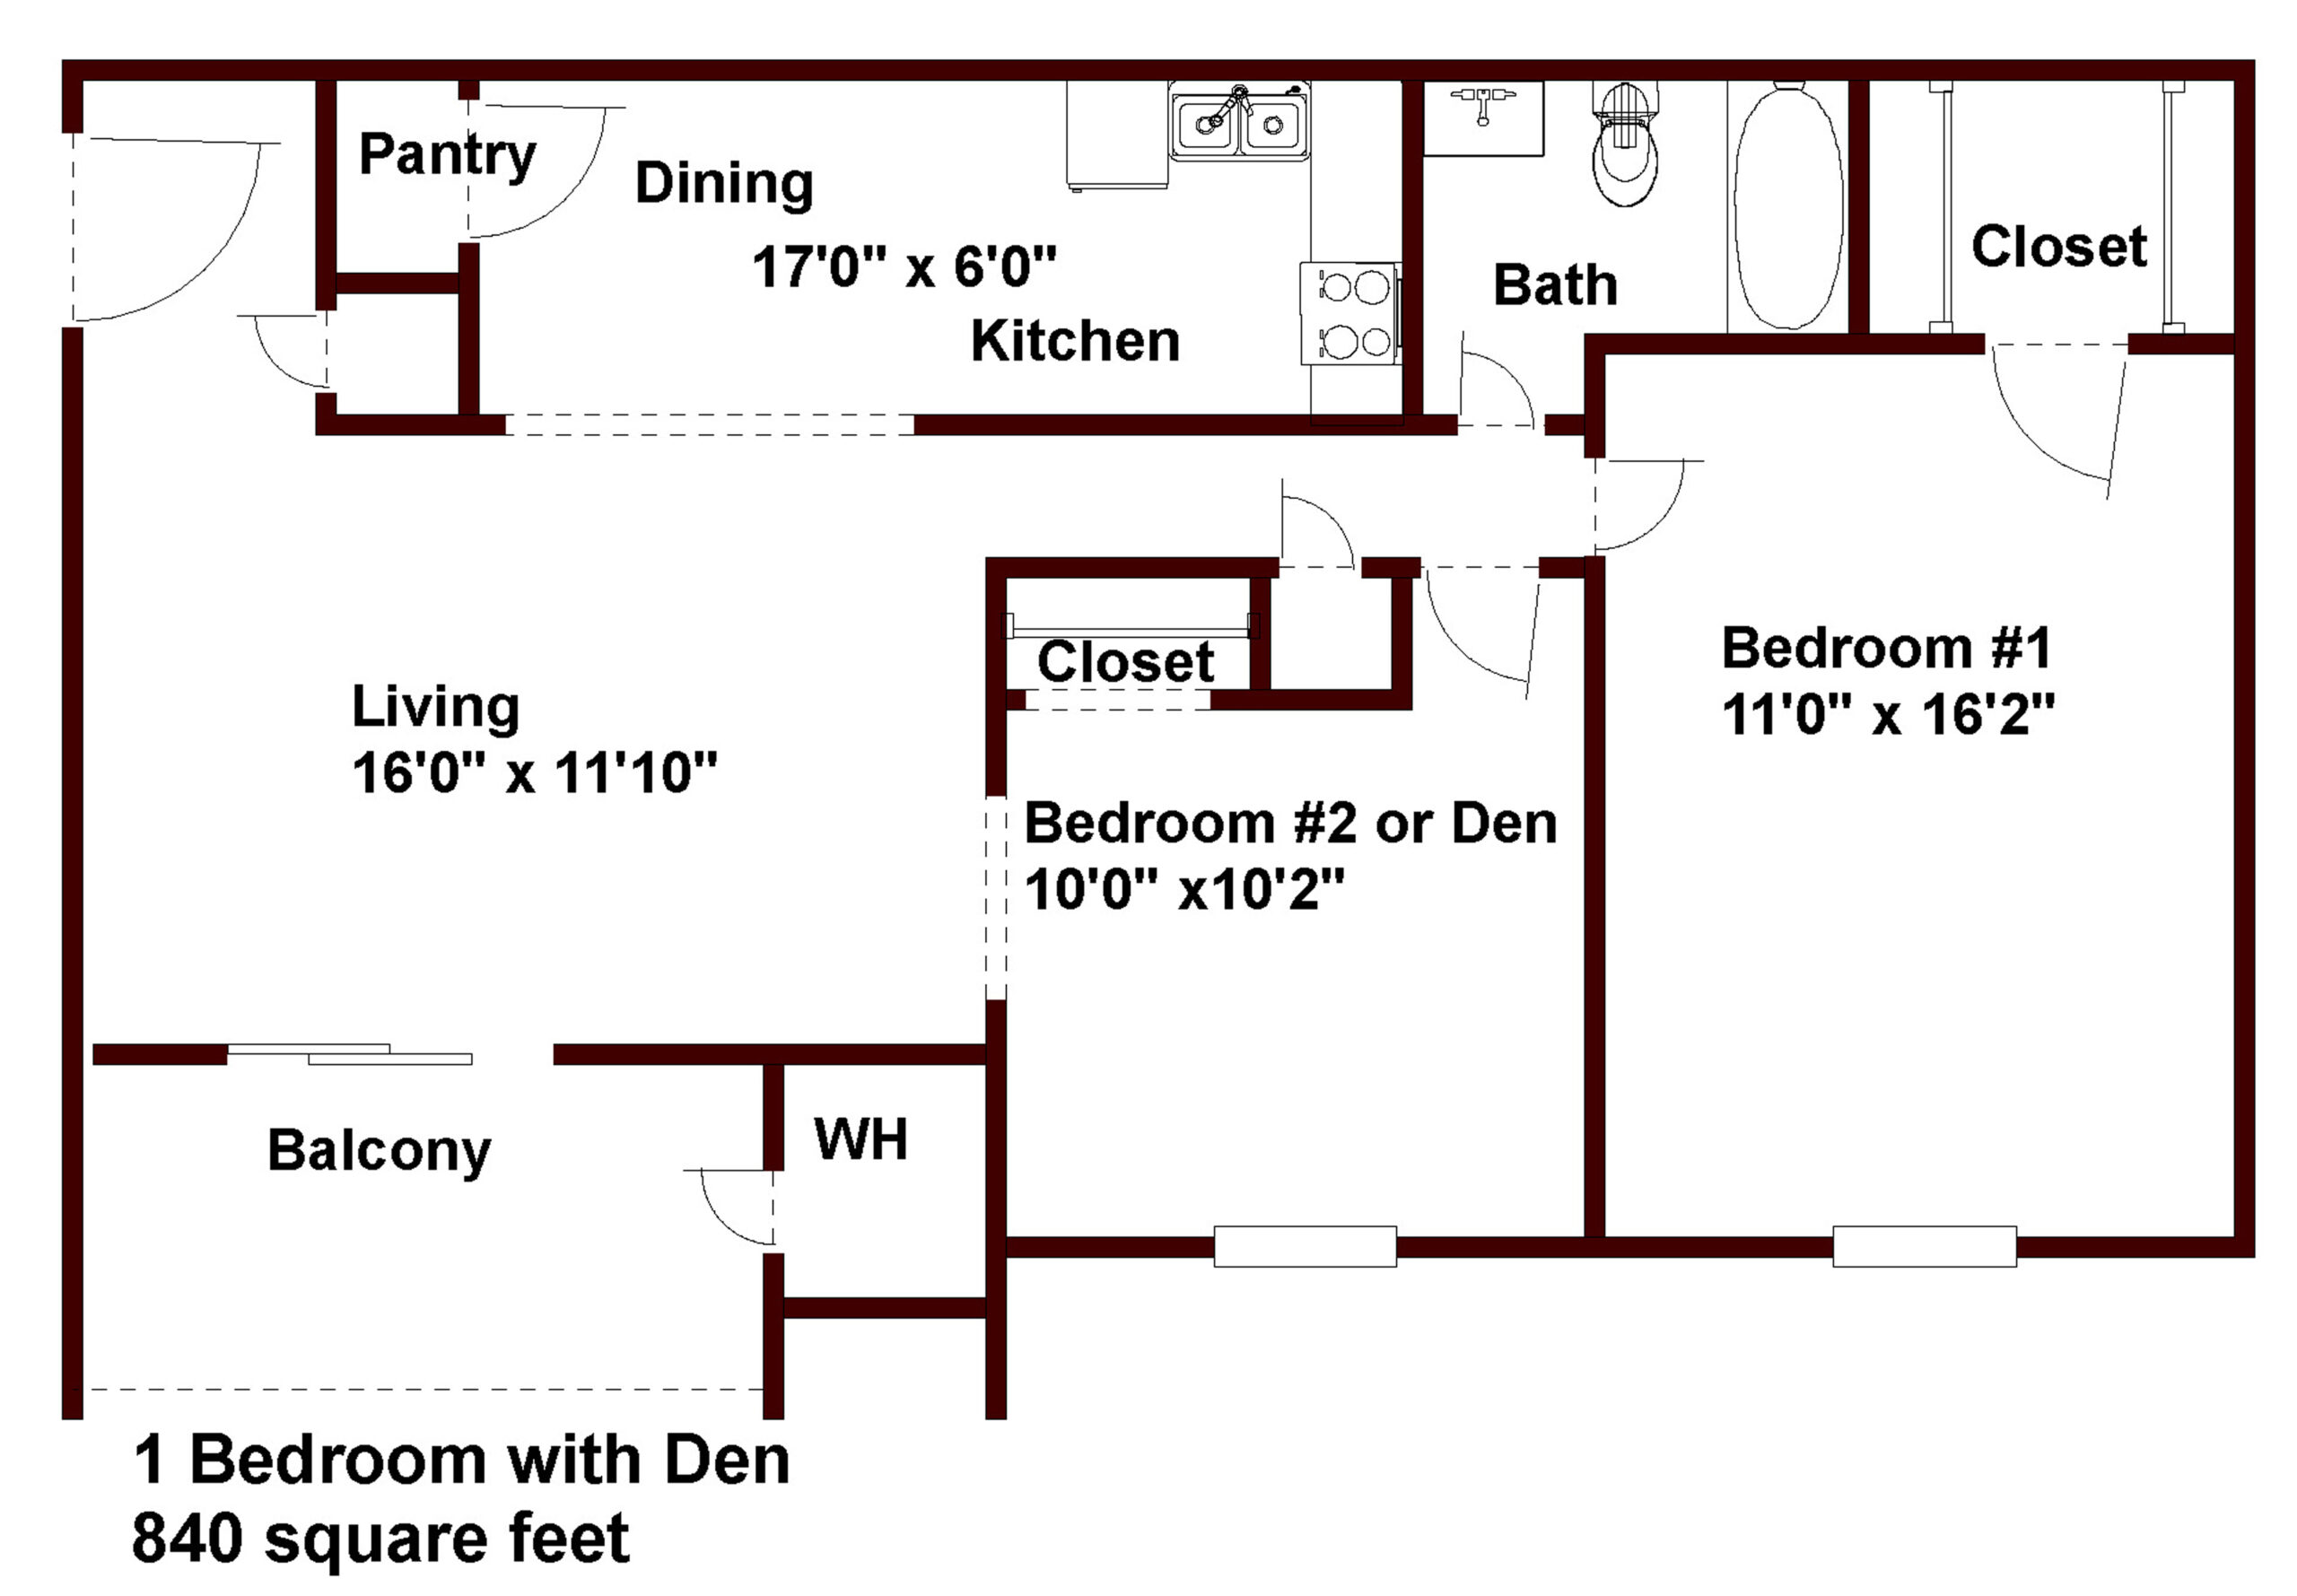 apartments in chapel hill 1 bedroom 1 bath with den floor plan